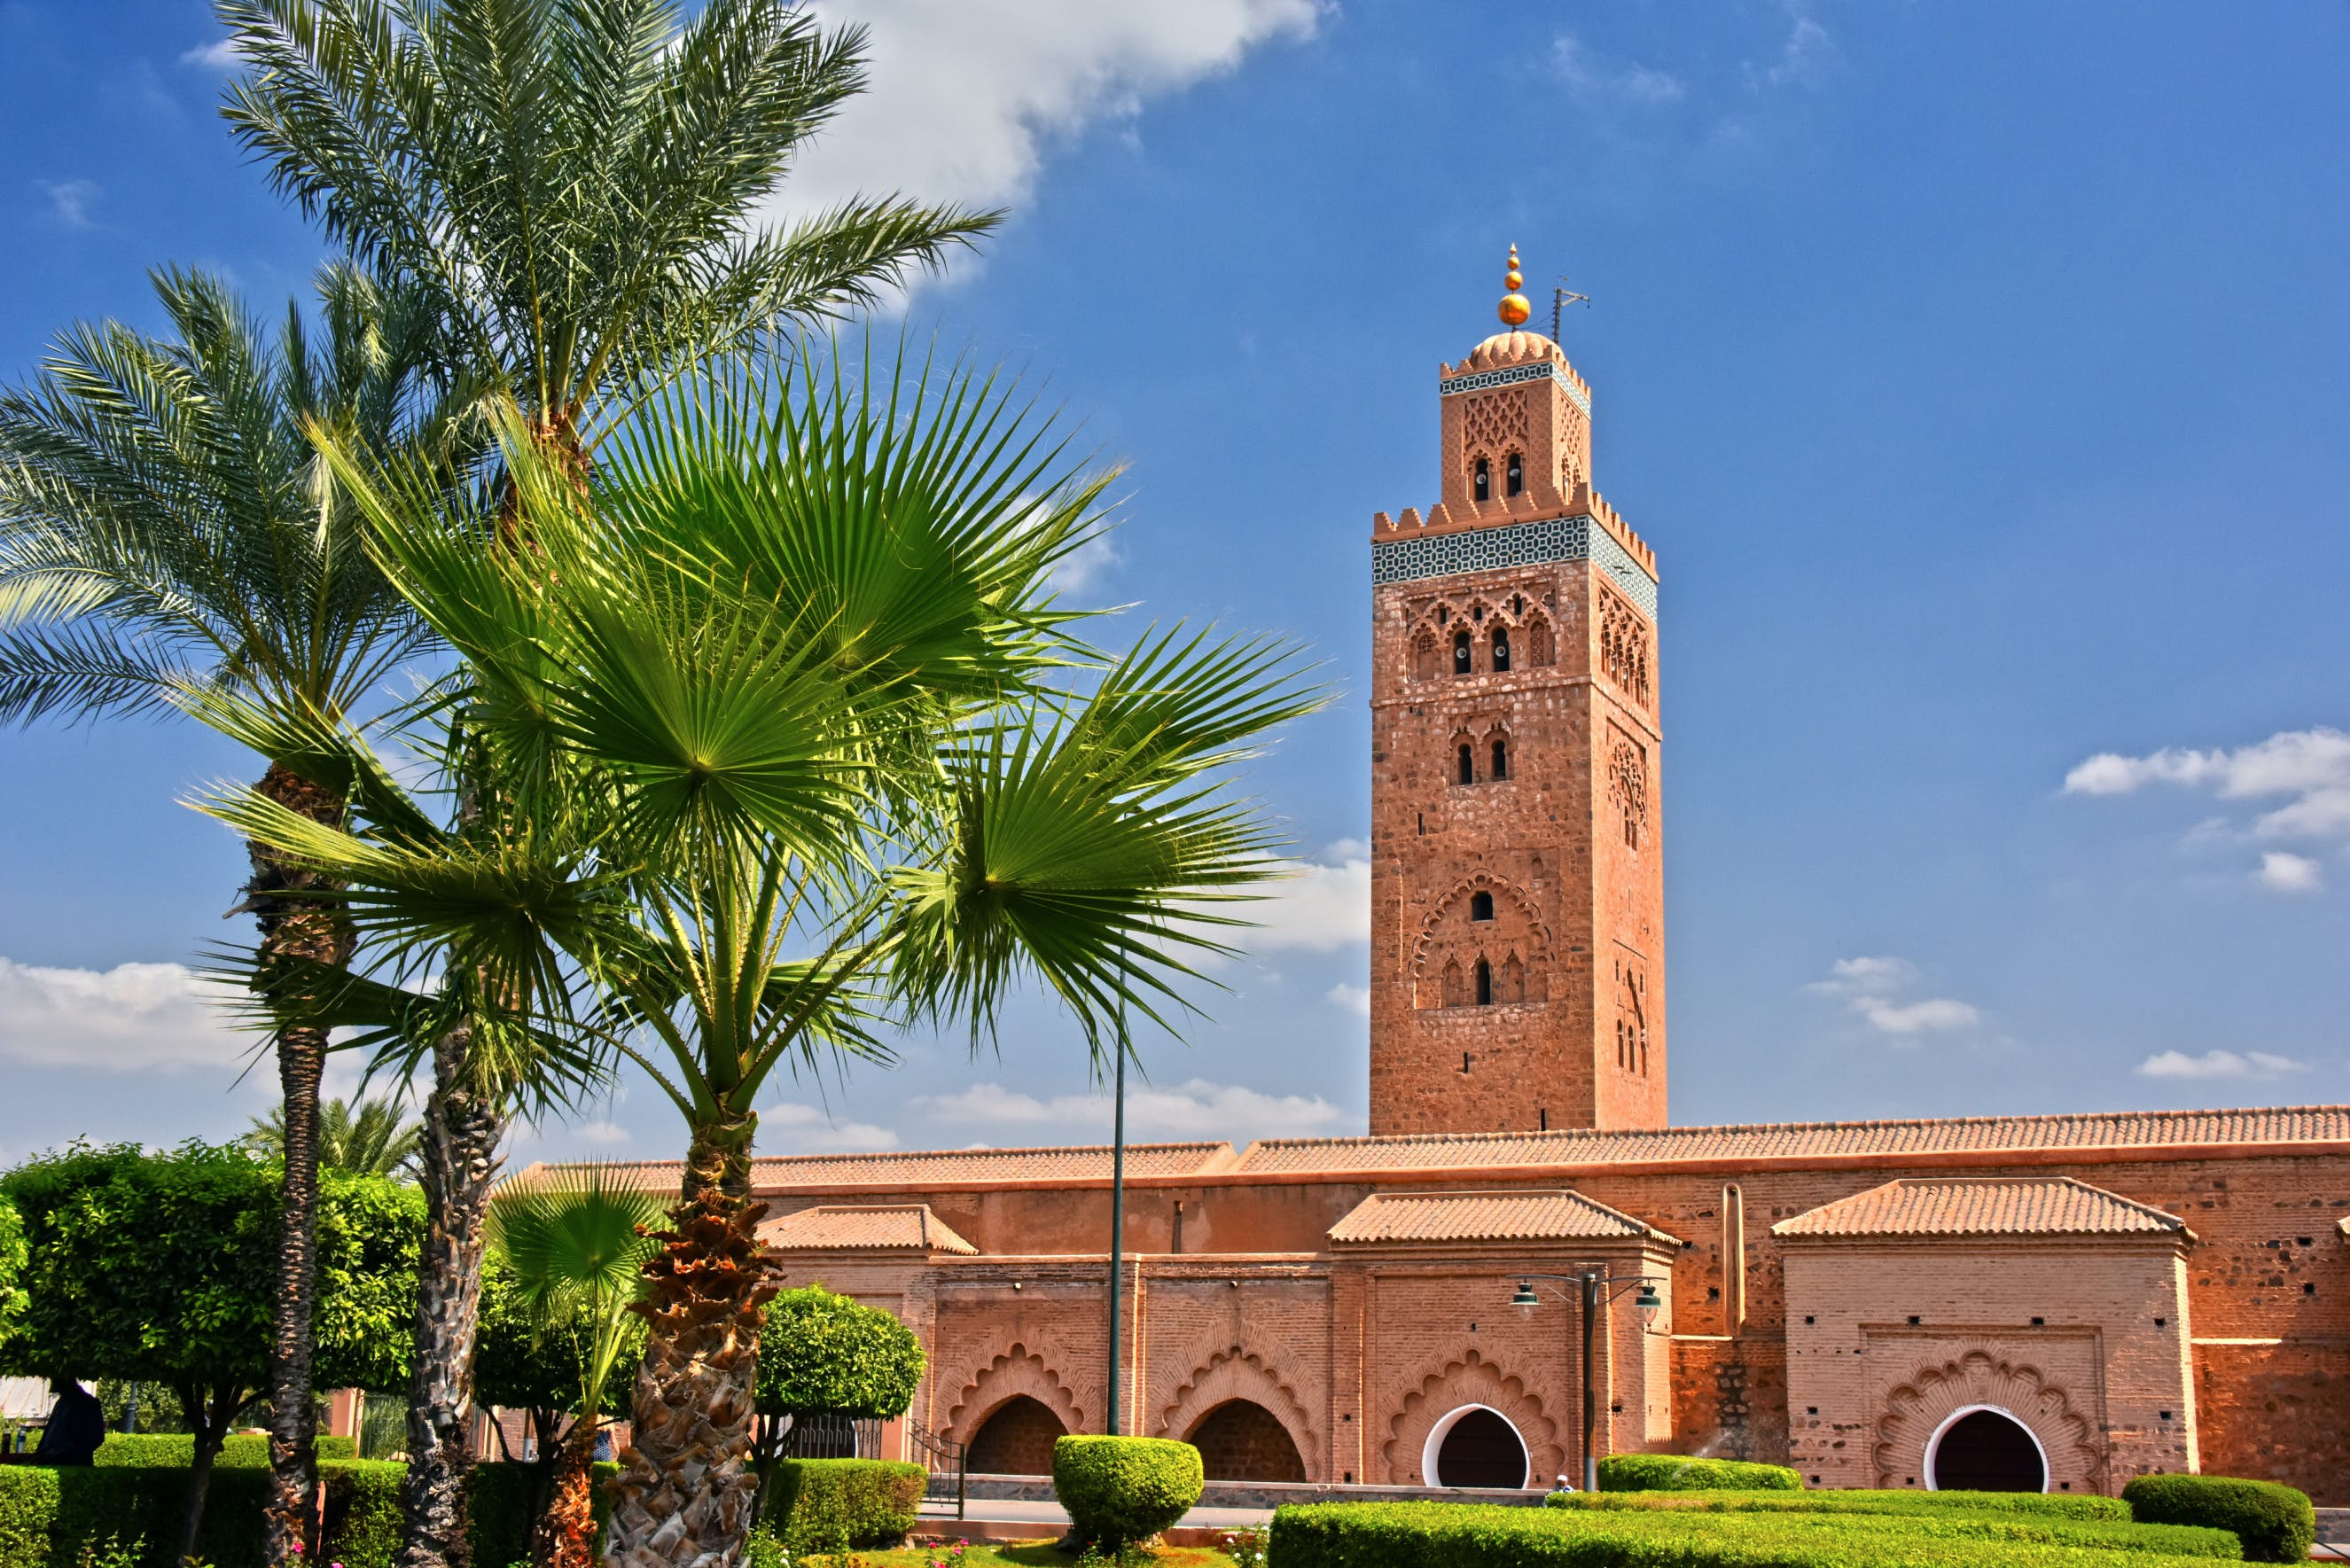 Koutoubia Mosque Marrakesh Morocco Attractions Lonely Planet